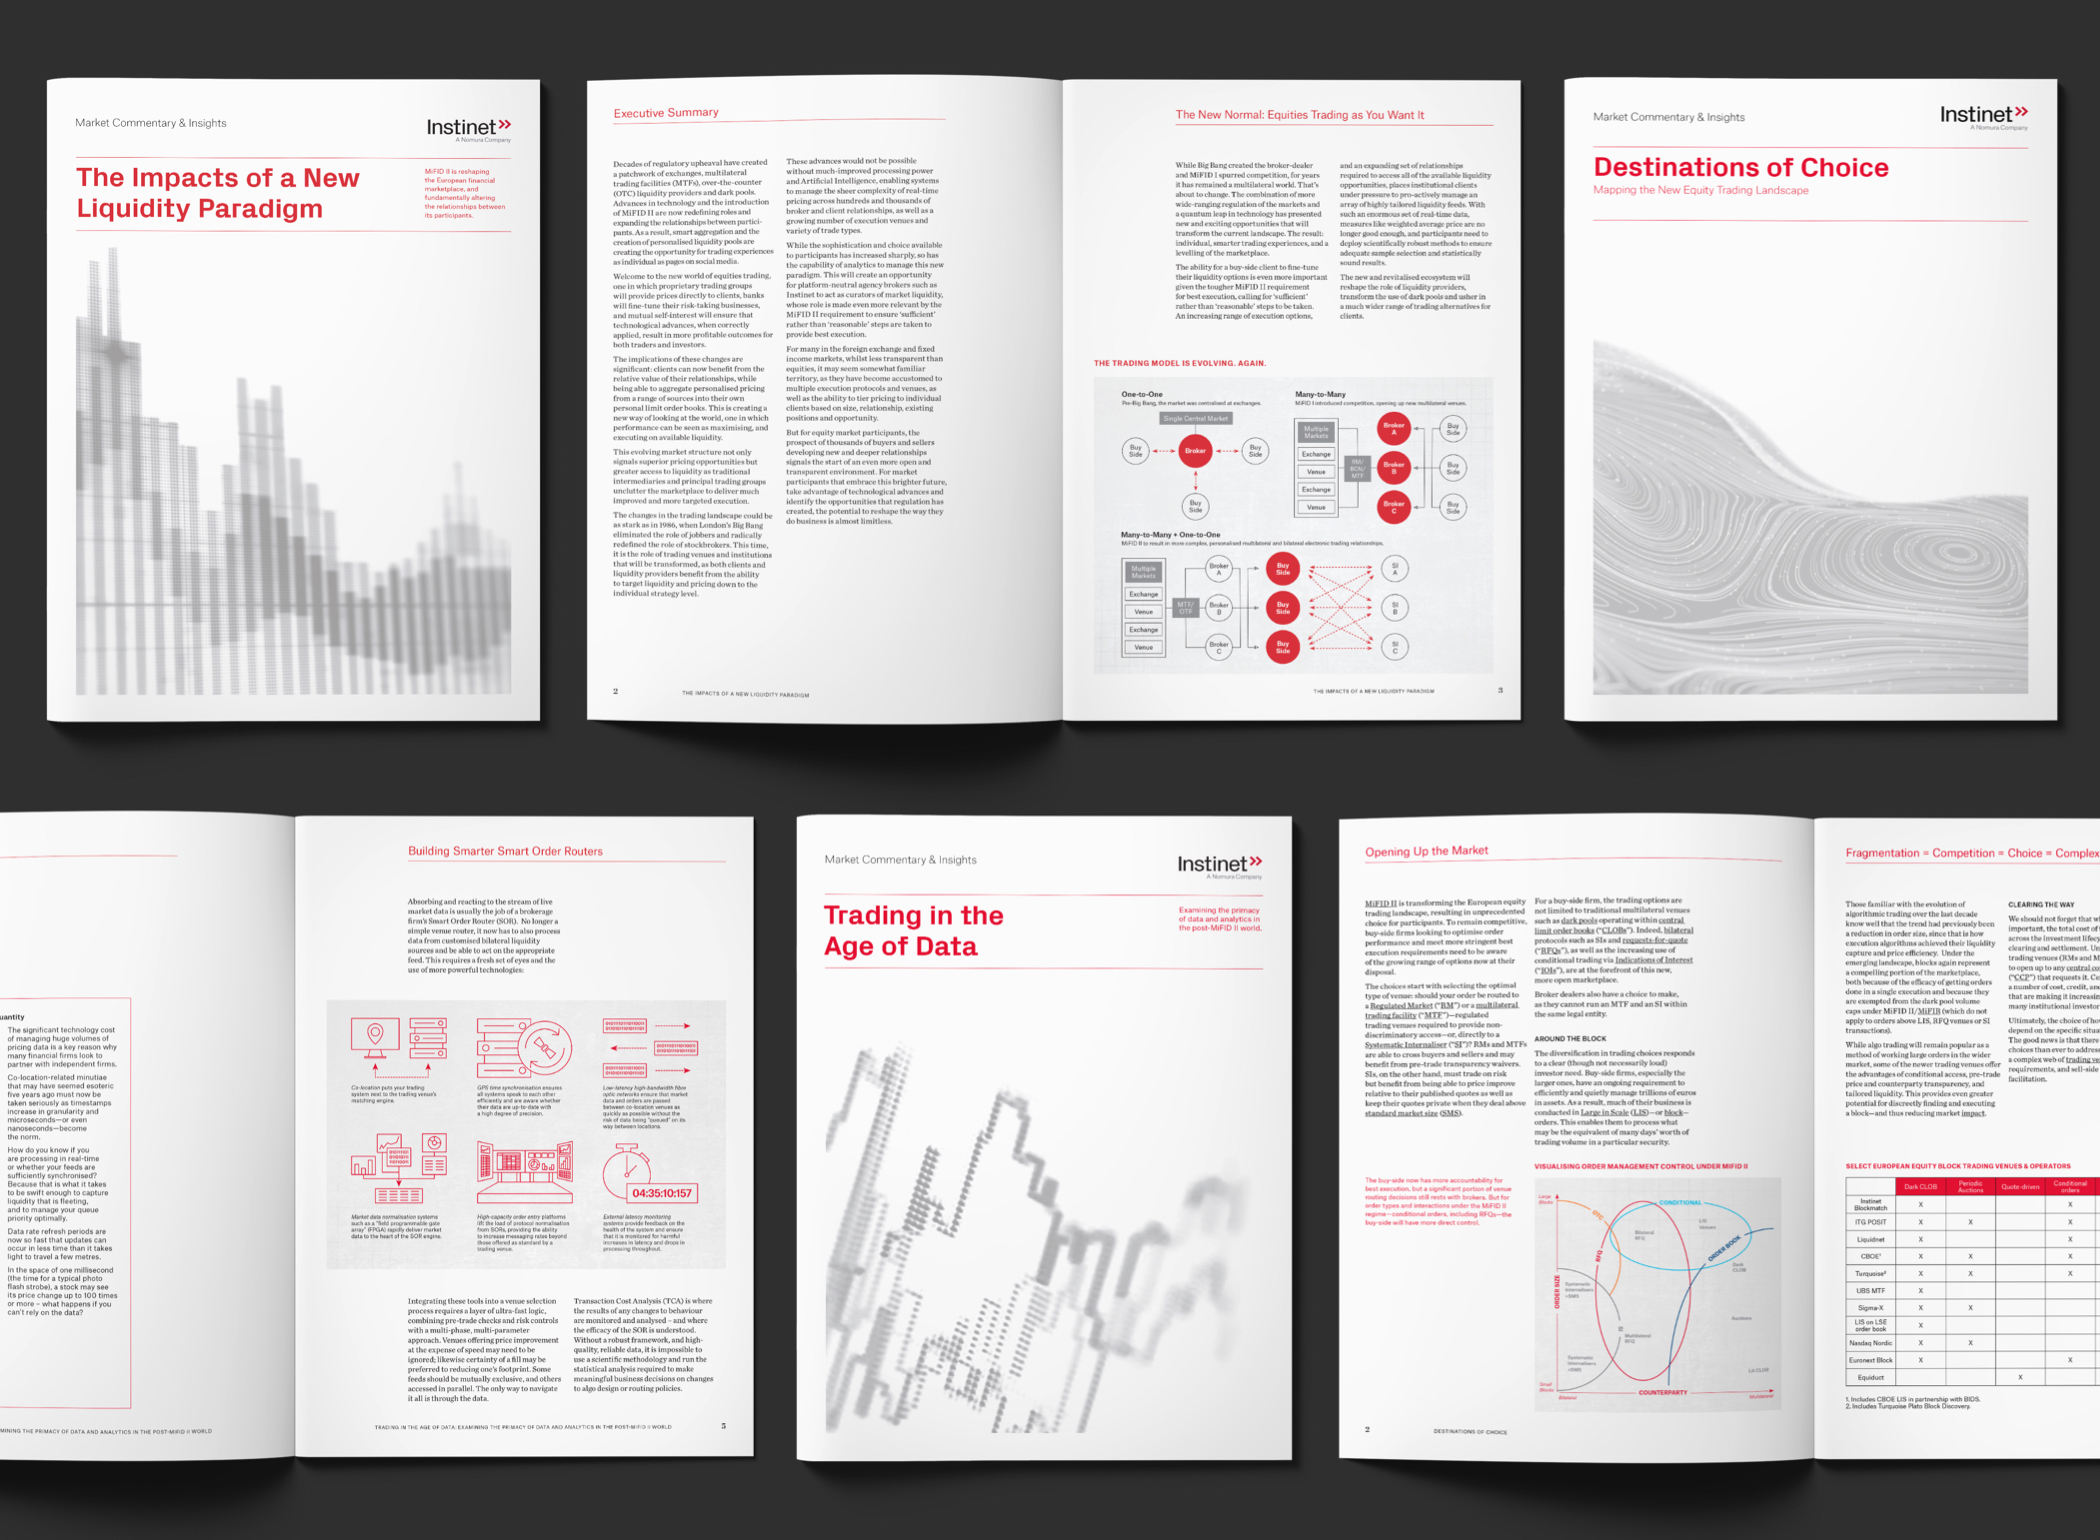 Several covers and inside pages from Instinet's thought leadership series, with abstract gray and while illustrations and charts and graphs illustrating the white papers' concepts.